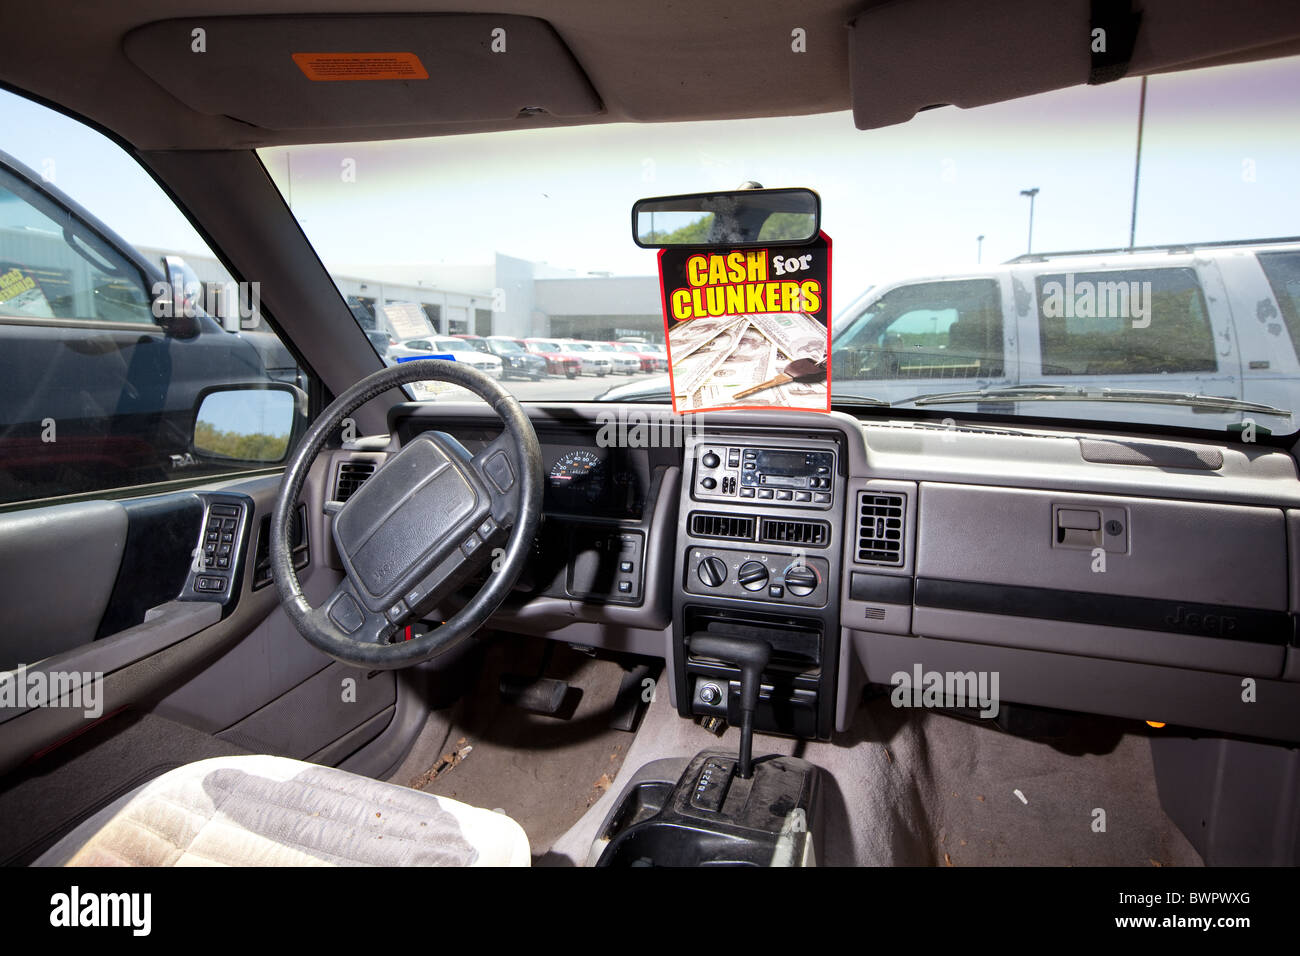 Interior of older used car in poor condition traded in for new ...